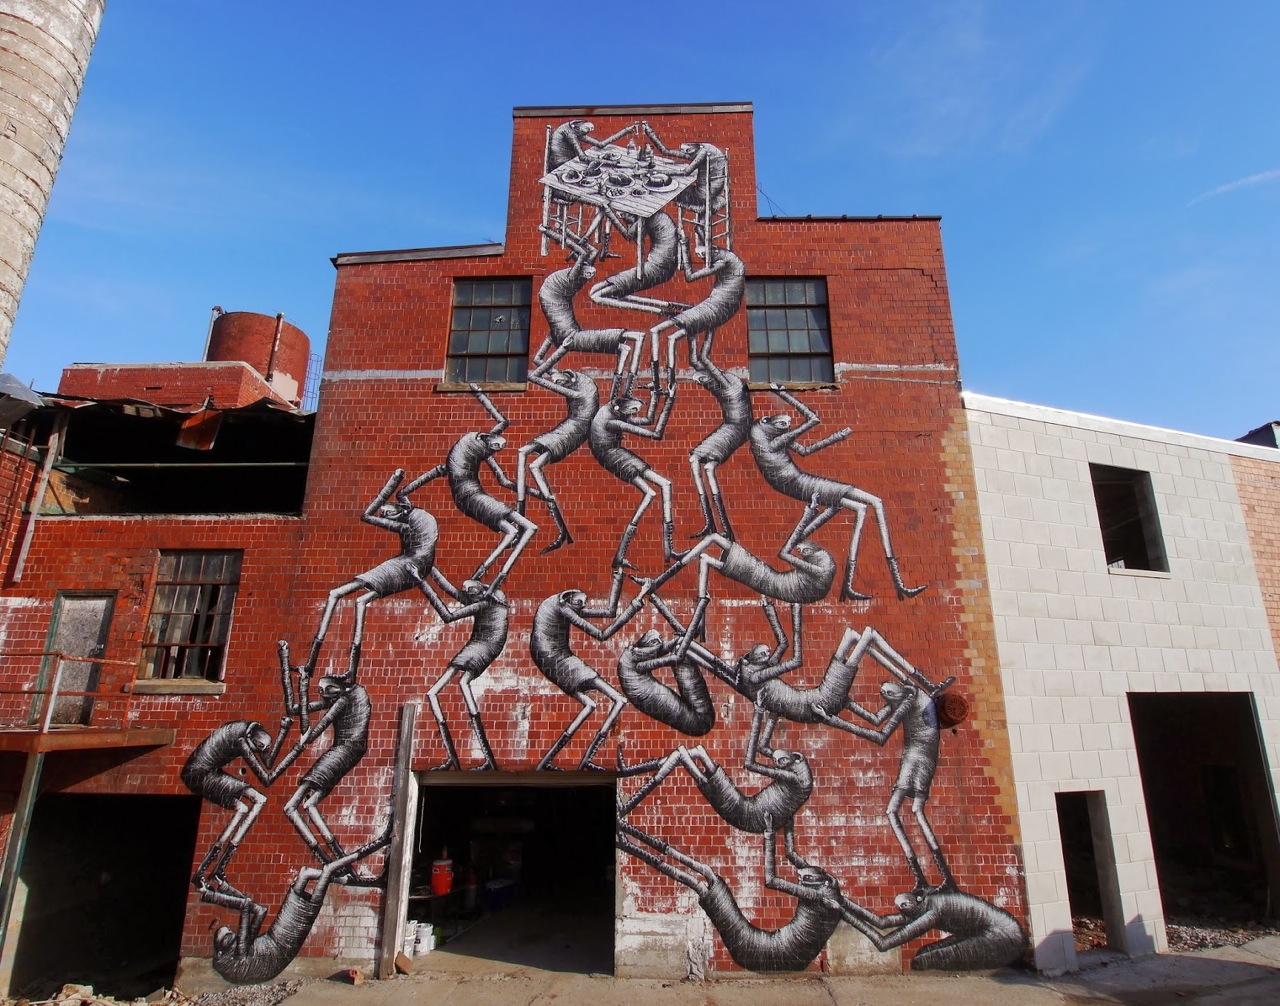 Phlegm in Lexington, Kentucky.